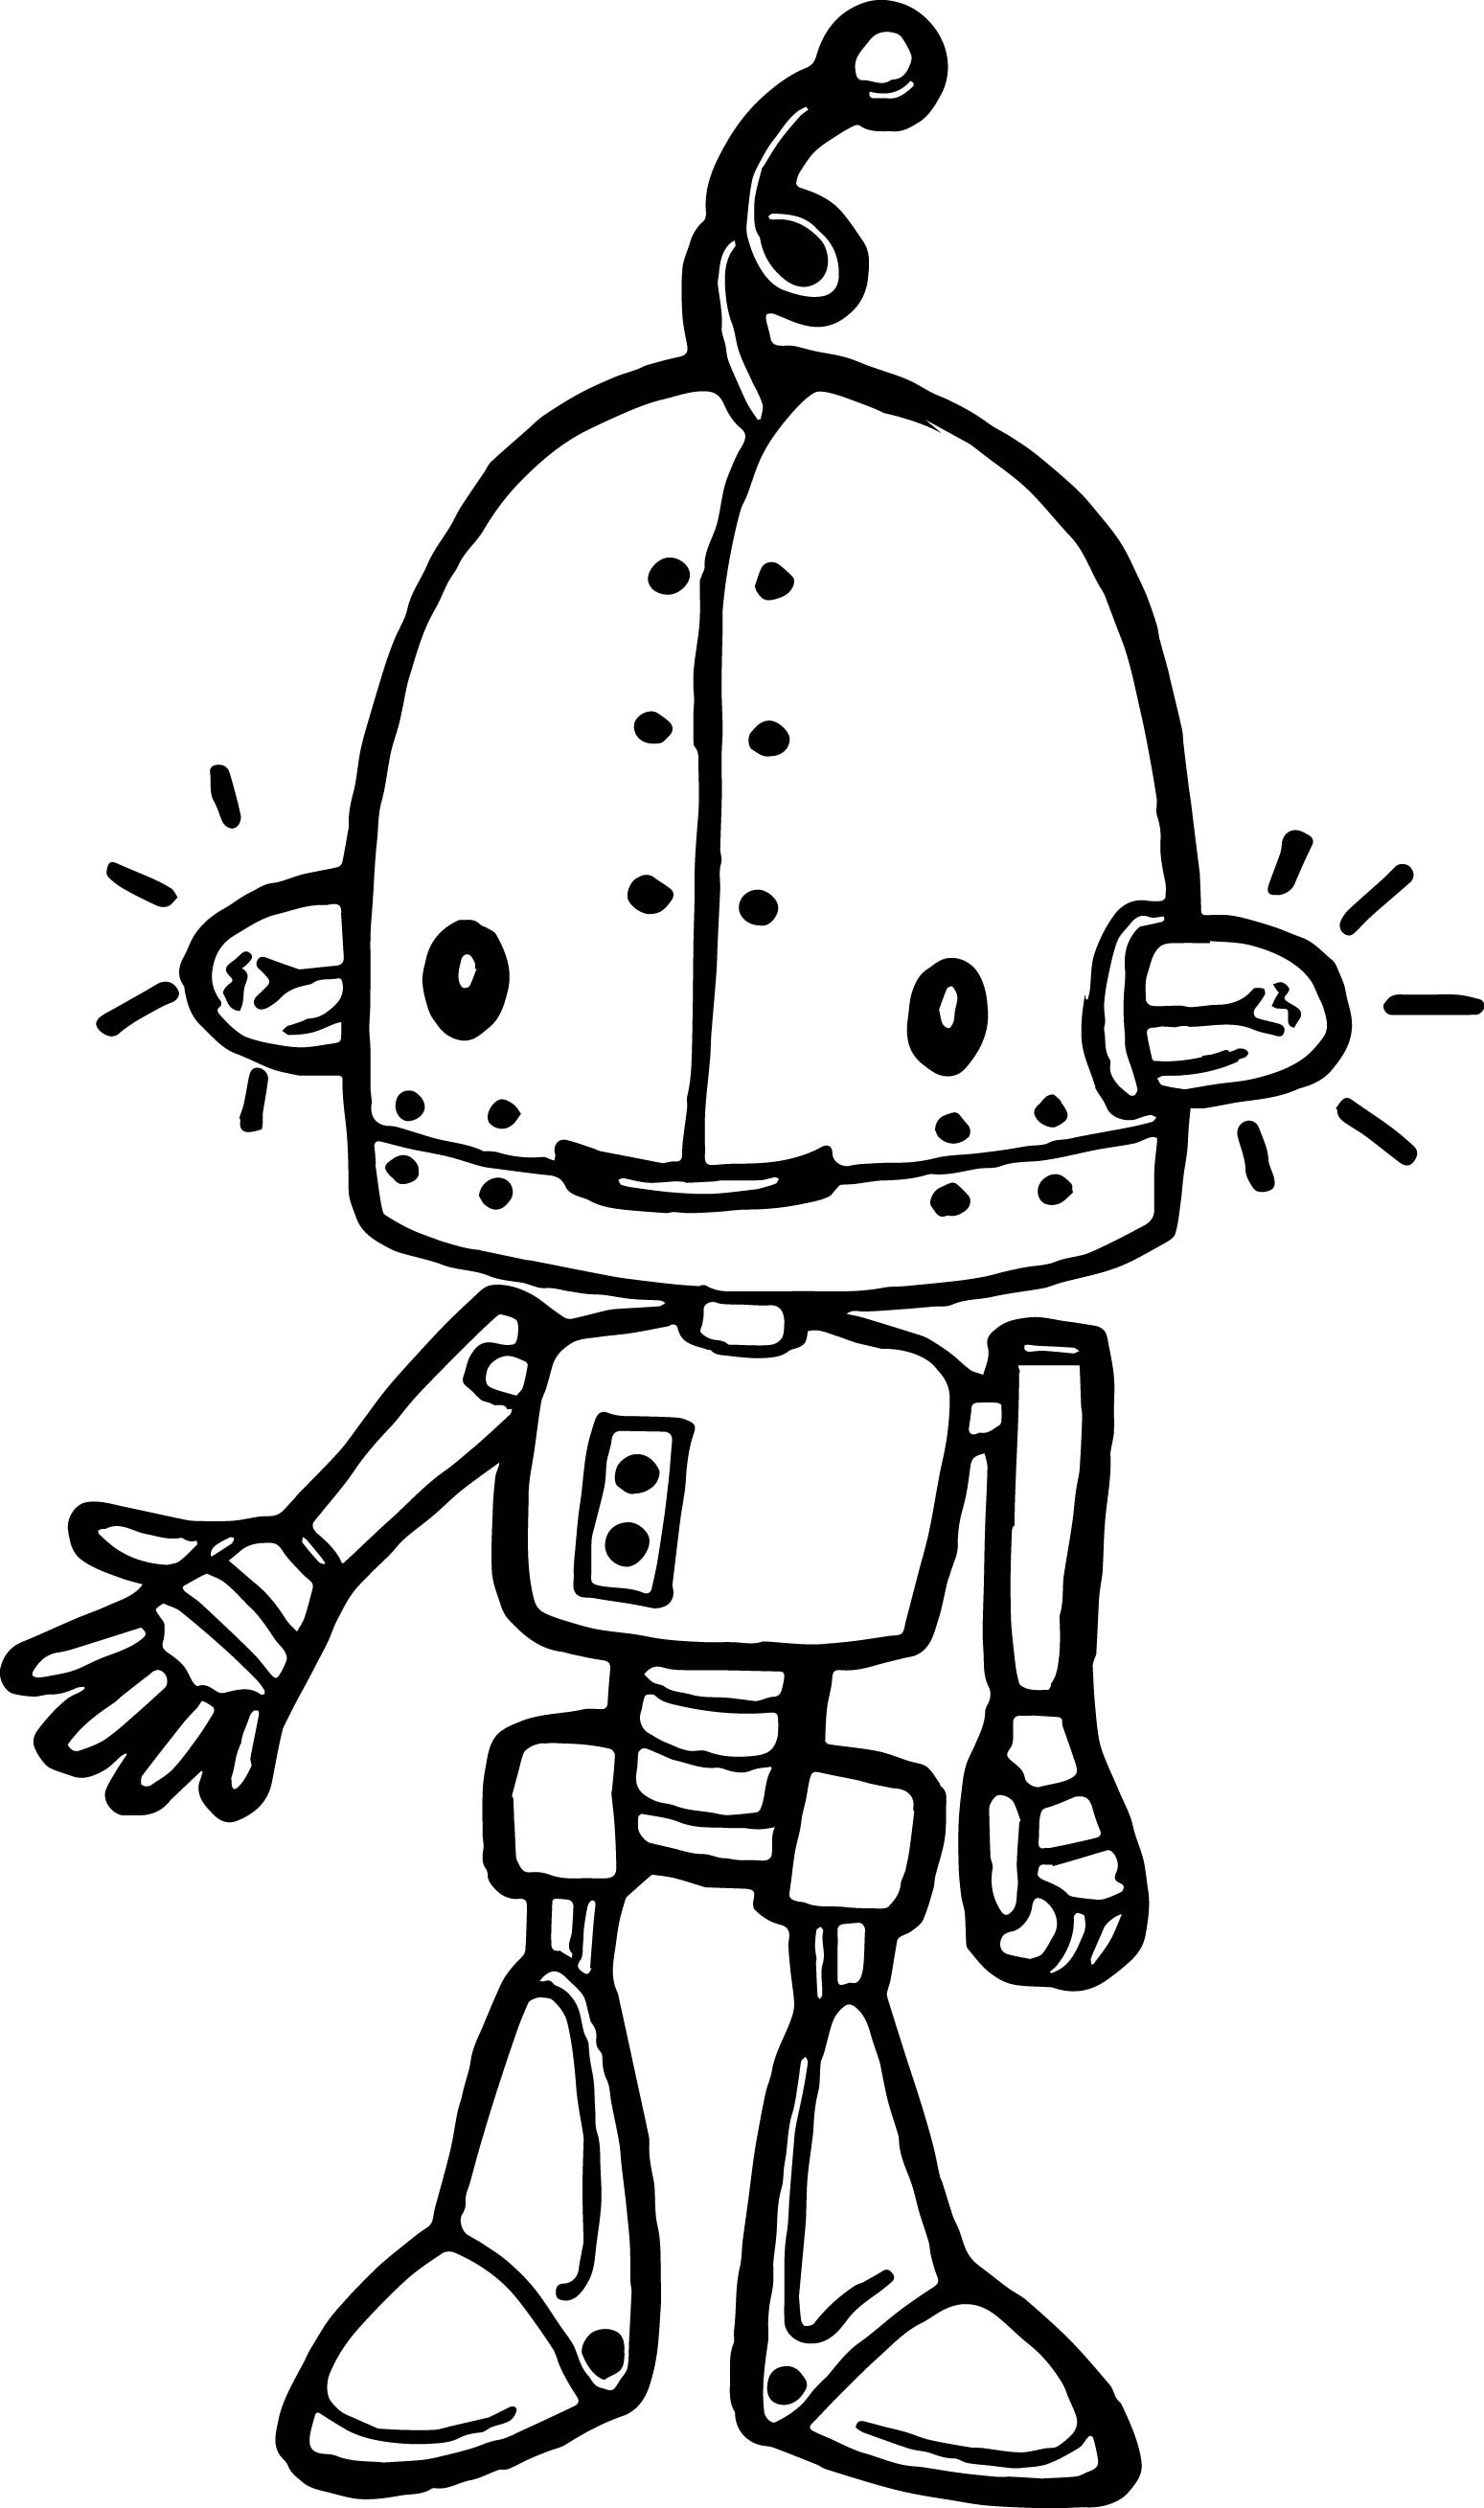 coloring robot drawing cool robot coloring pages at getdrawings free download coloring robot drawing